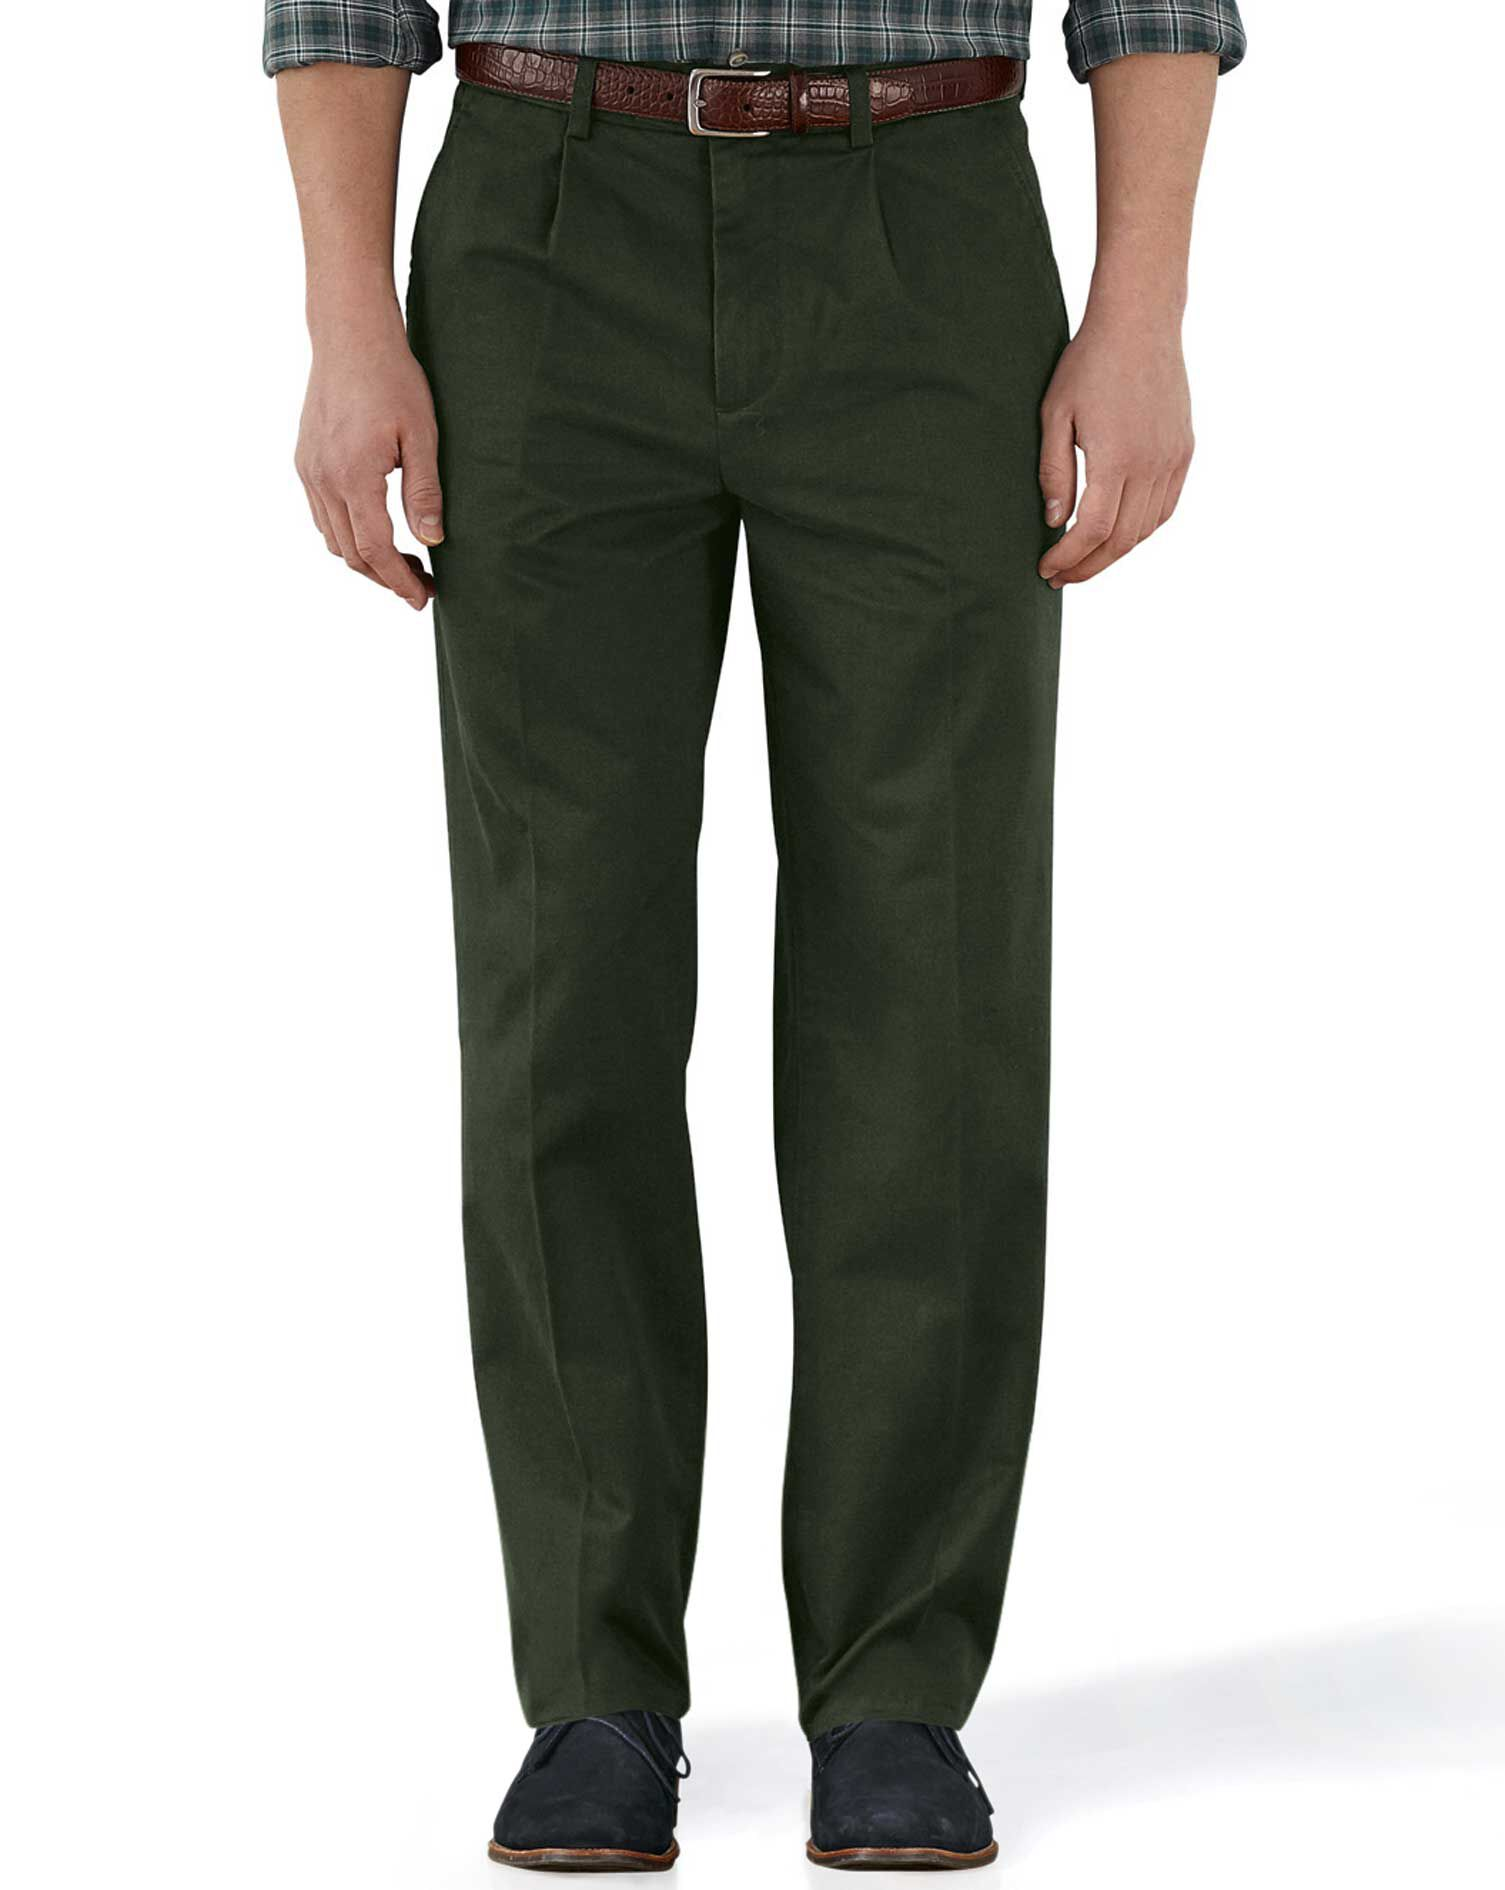 Dark Green Classic Fit Single Pleat Weekend Cotton Chino Trousers Size W32 L38 by Charles Tyrwhitt